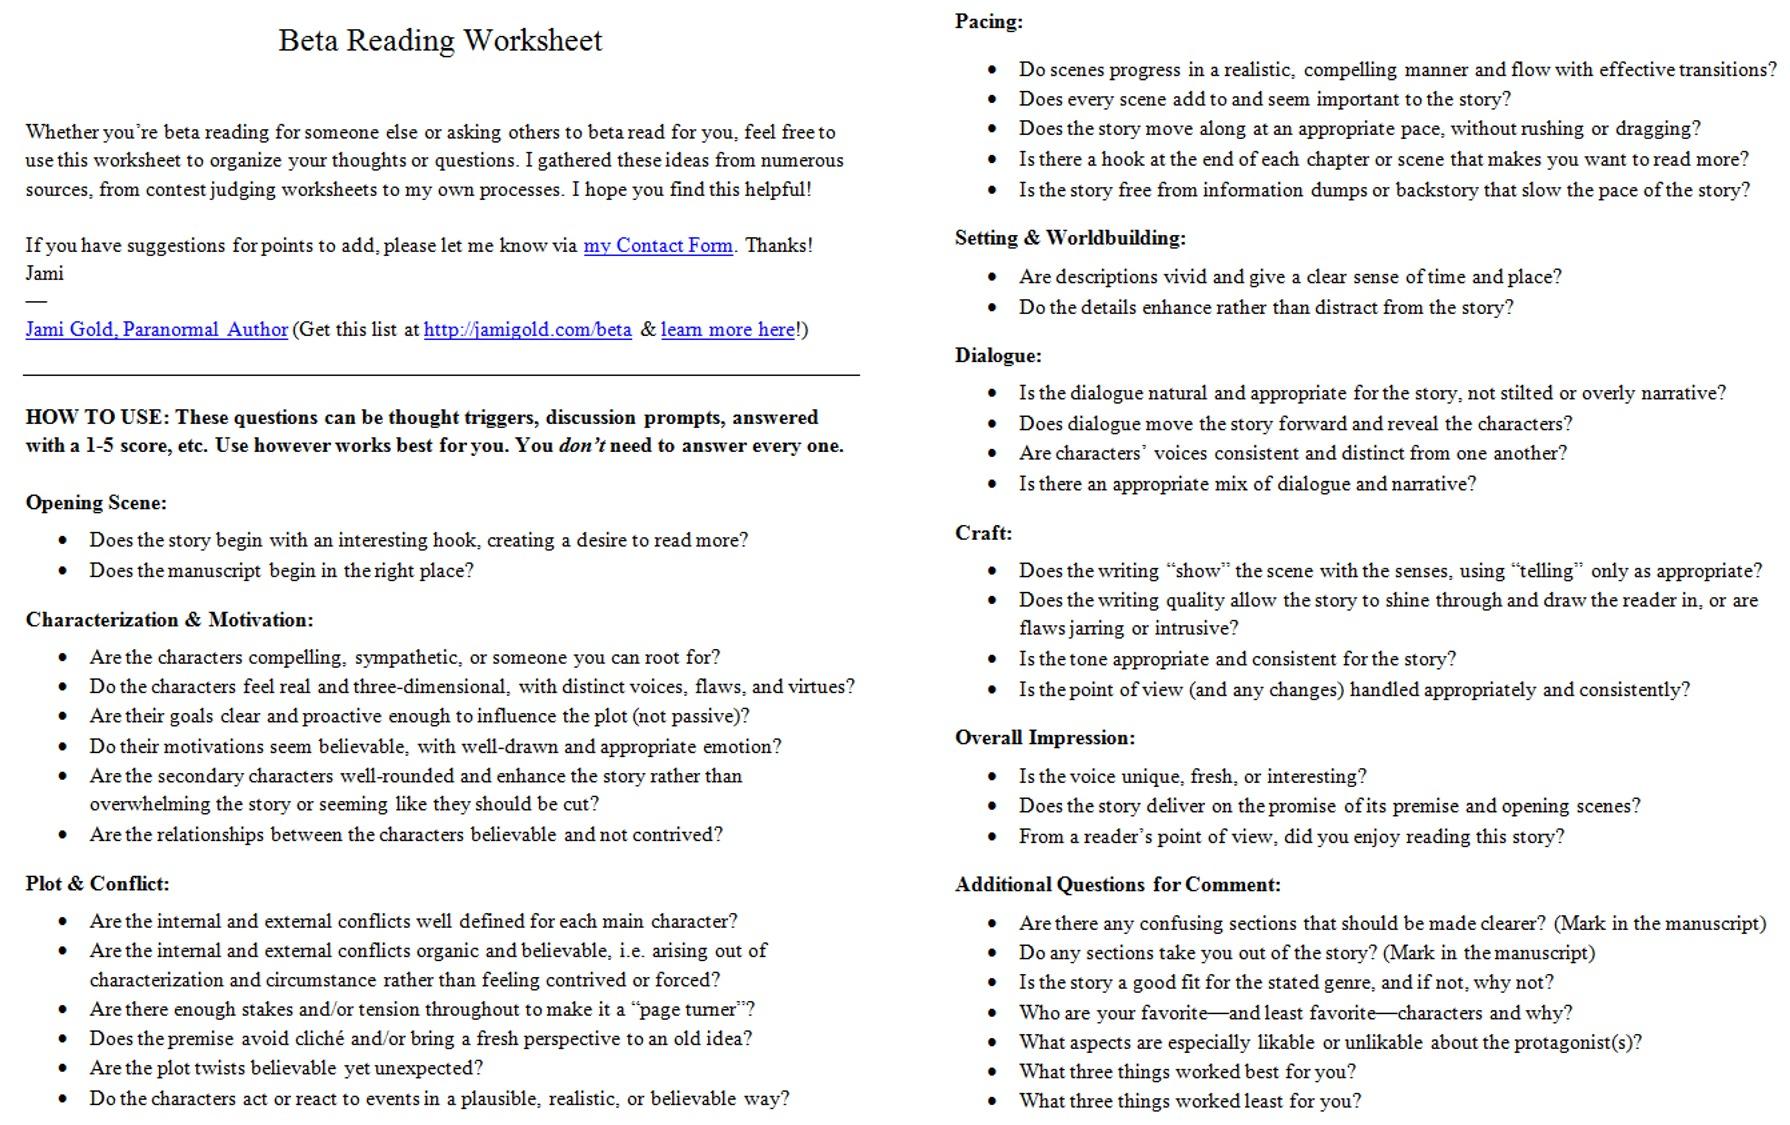 Aldiablosus  Outstanding Worksheets For Writers  Jami Gold Paranormal Author With Heavenly Screen Shot Of The Twopage Beta Reading Worksheet With Appealing Free Second Grade Social Studies Worksheets Also Where And Were Worksheets In Addition Spanish And English Worksheets And X Table Worksheets As Well As Polyhedron Nets Worksheets Additionally Year  Subtraction Worksheets From Jamigoldcom With Aldiablosus  Heavenly Worksheets For Writers  Jami Gold Paranormal Author With Appealing Screen Shot Of The Twopage Beta Reading Worksheet And Outstanding Free Second Grade Social Studies Worksheets Also Where And Were Worksheets In Addition Spanish And English Worksheets From Jamigoldcom